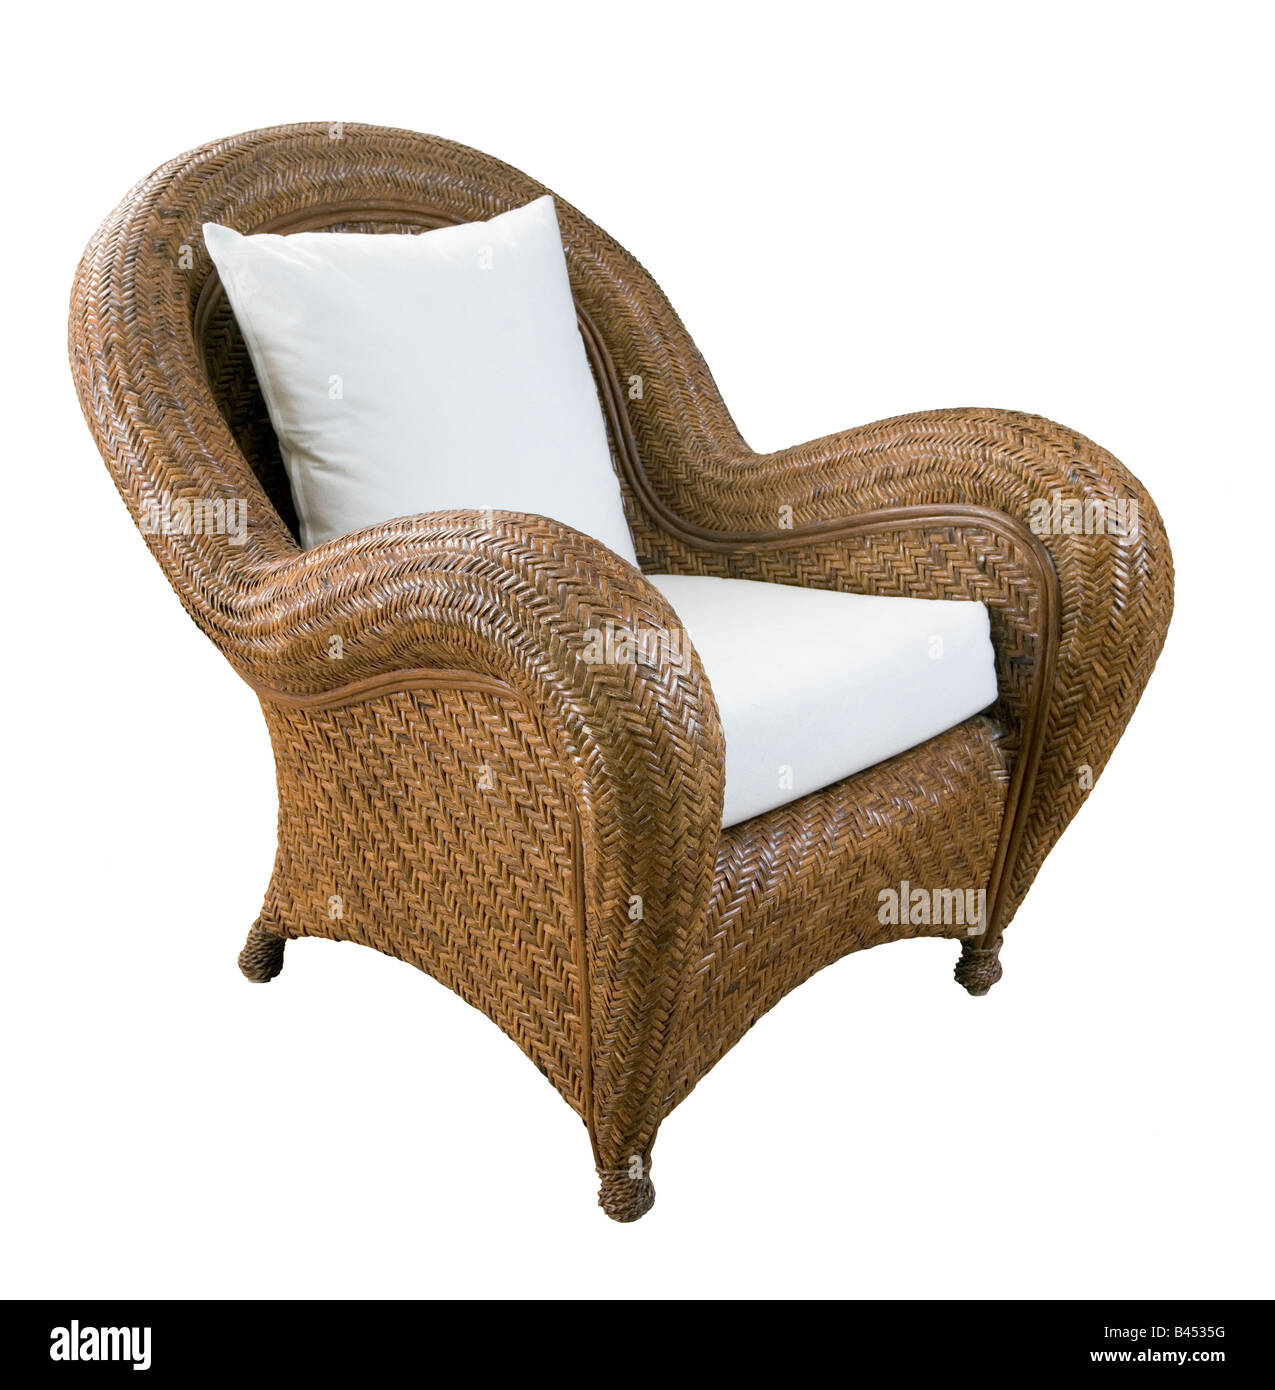 A large wicker chair with white cushions Stock Photo